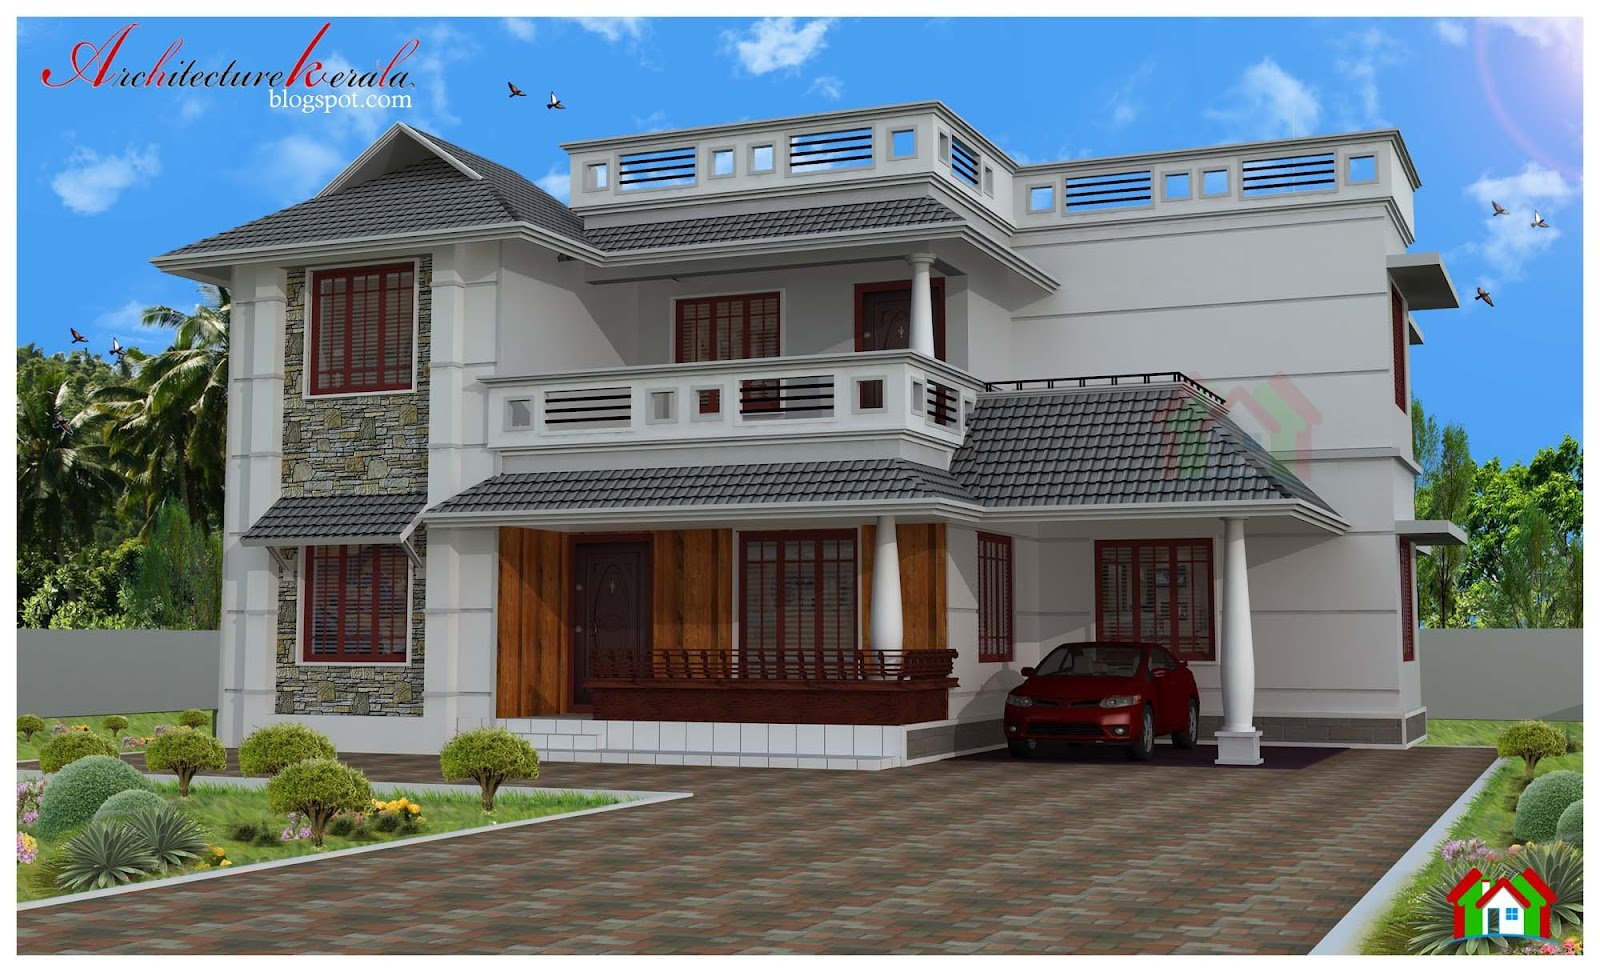 Best Architecture Kerala Four Bed Room House Plan With Pictures